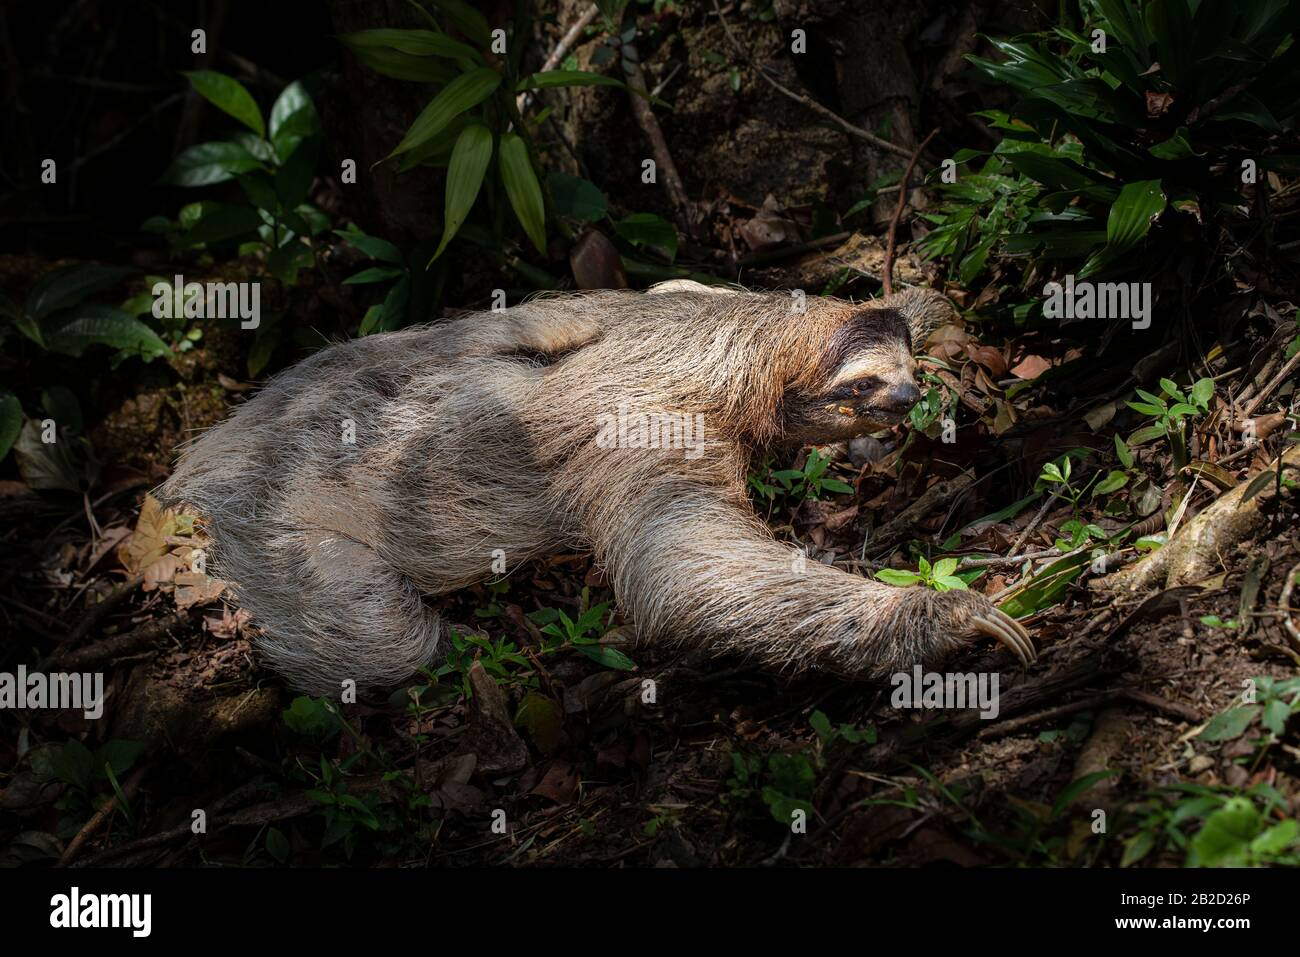 Brown-throated three-toed sloth young one crawling on the forest floor Stock Photo